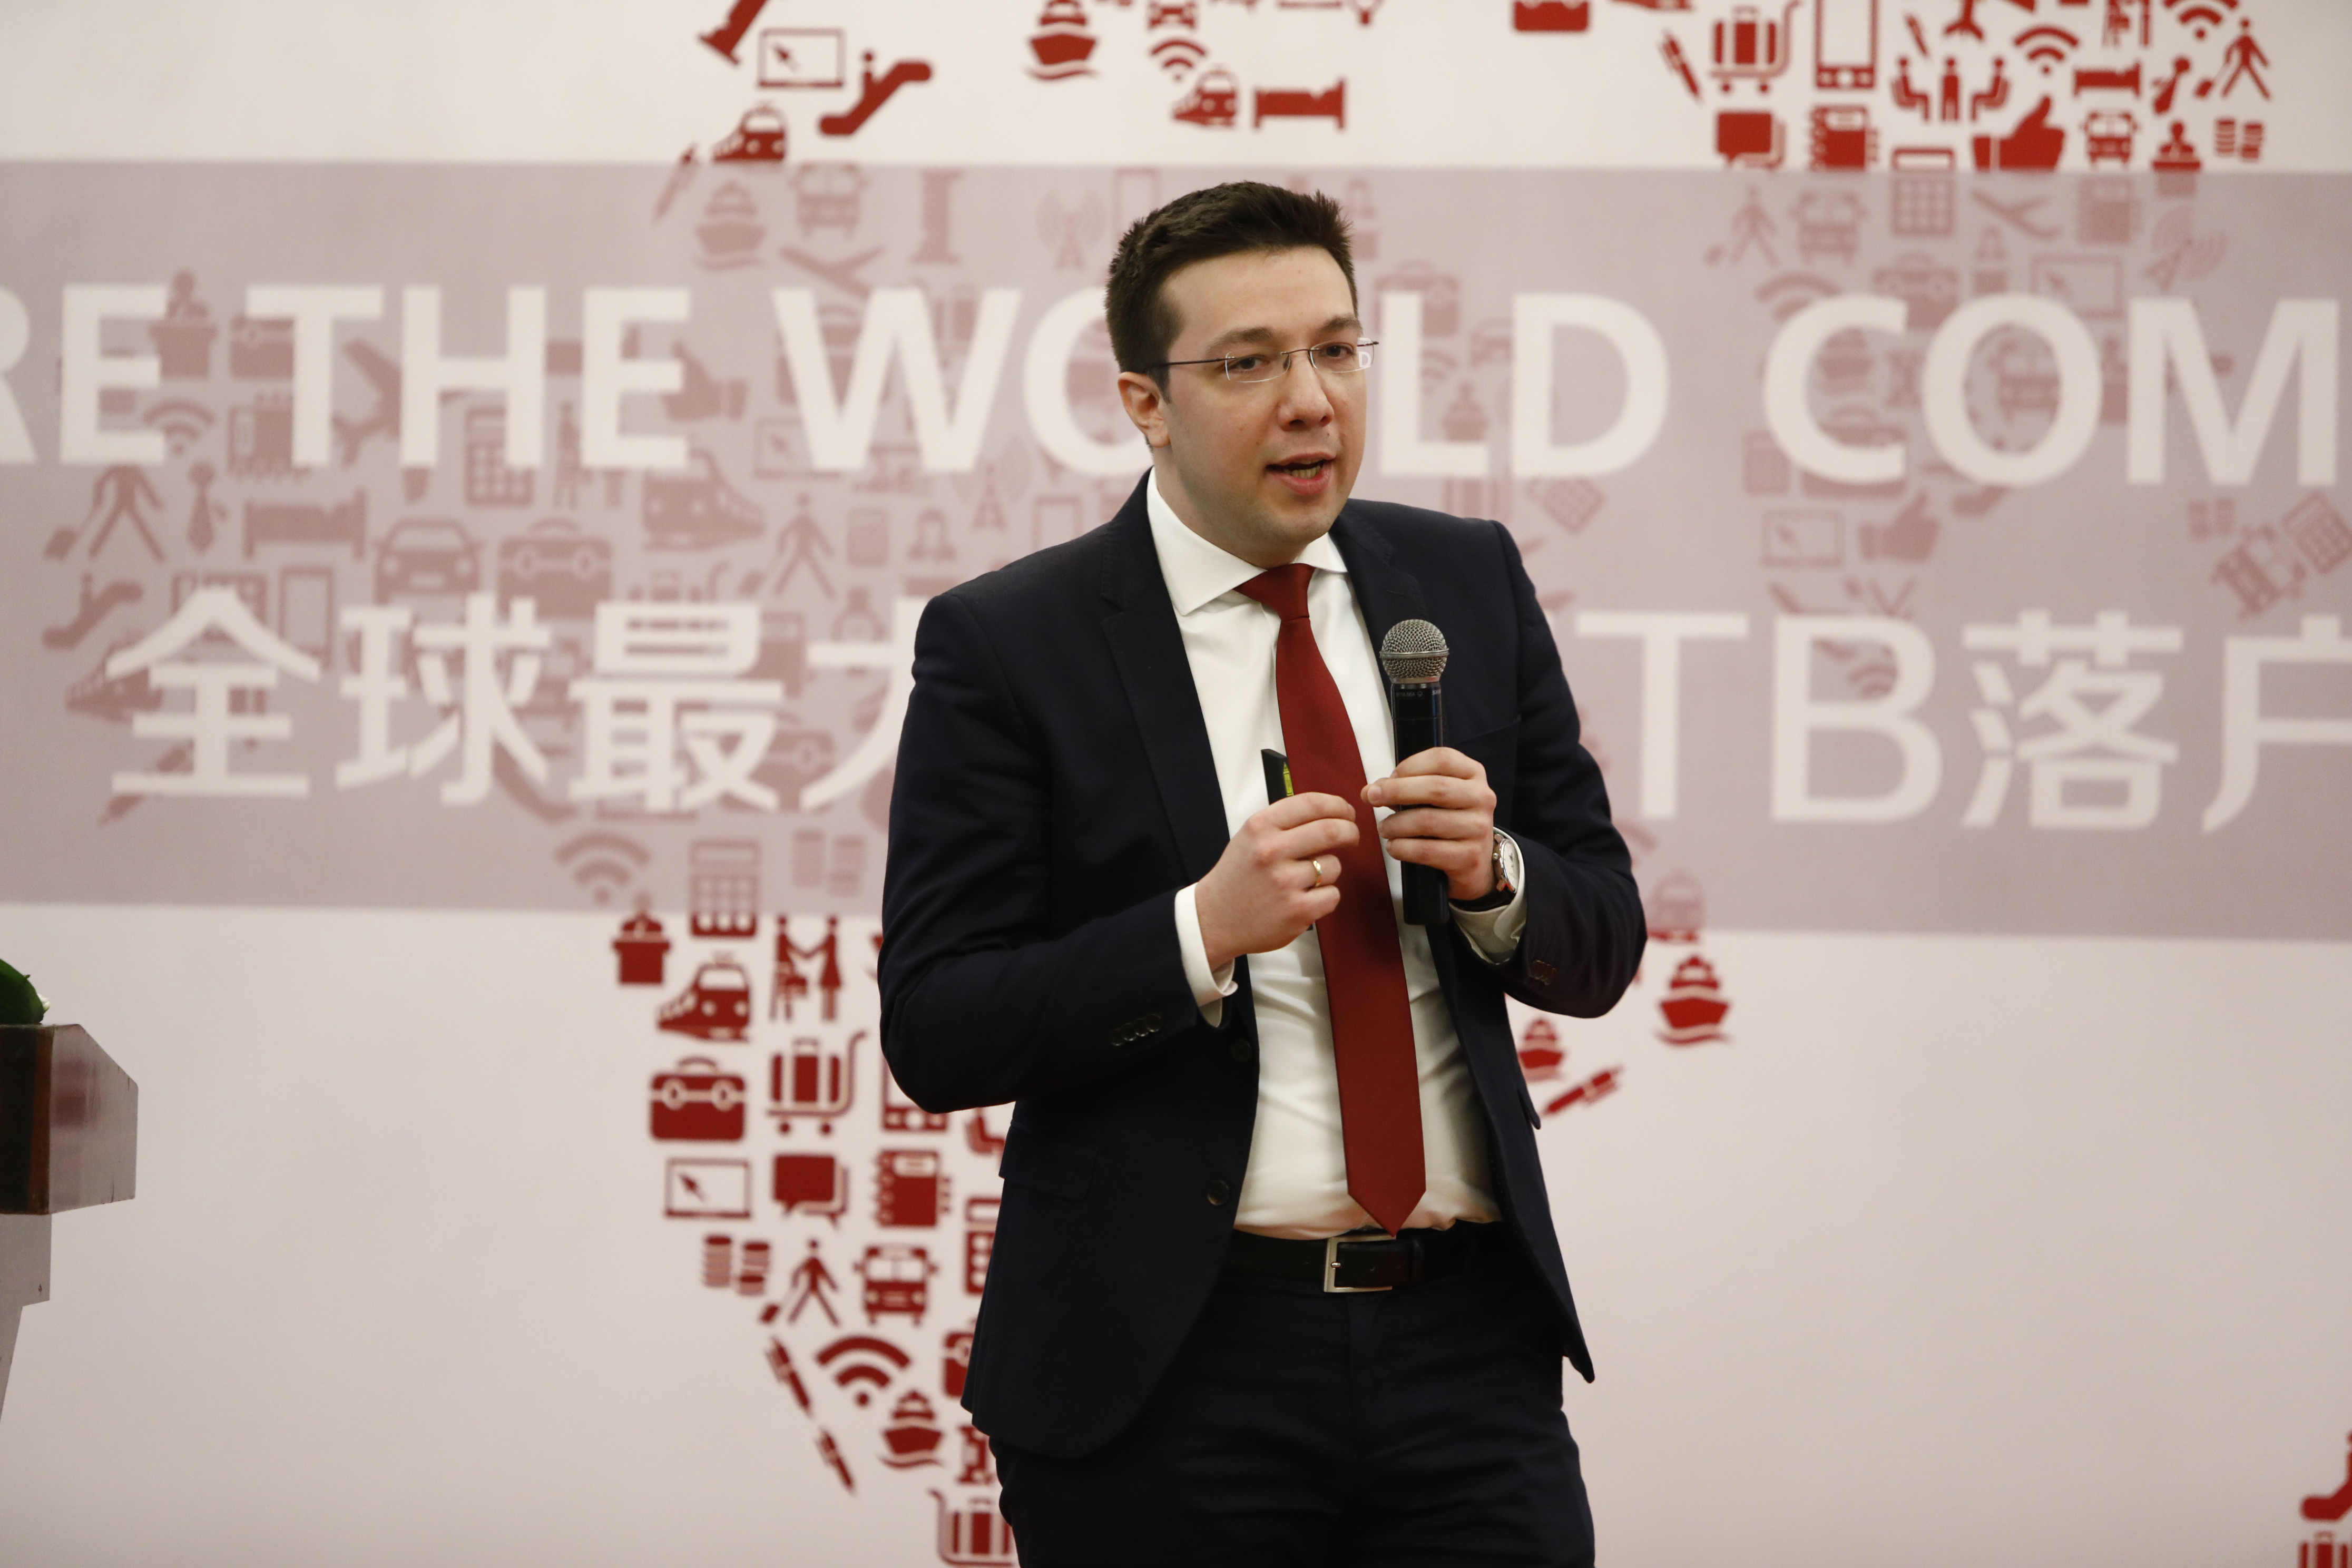 David Axiotis from ITB China